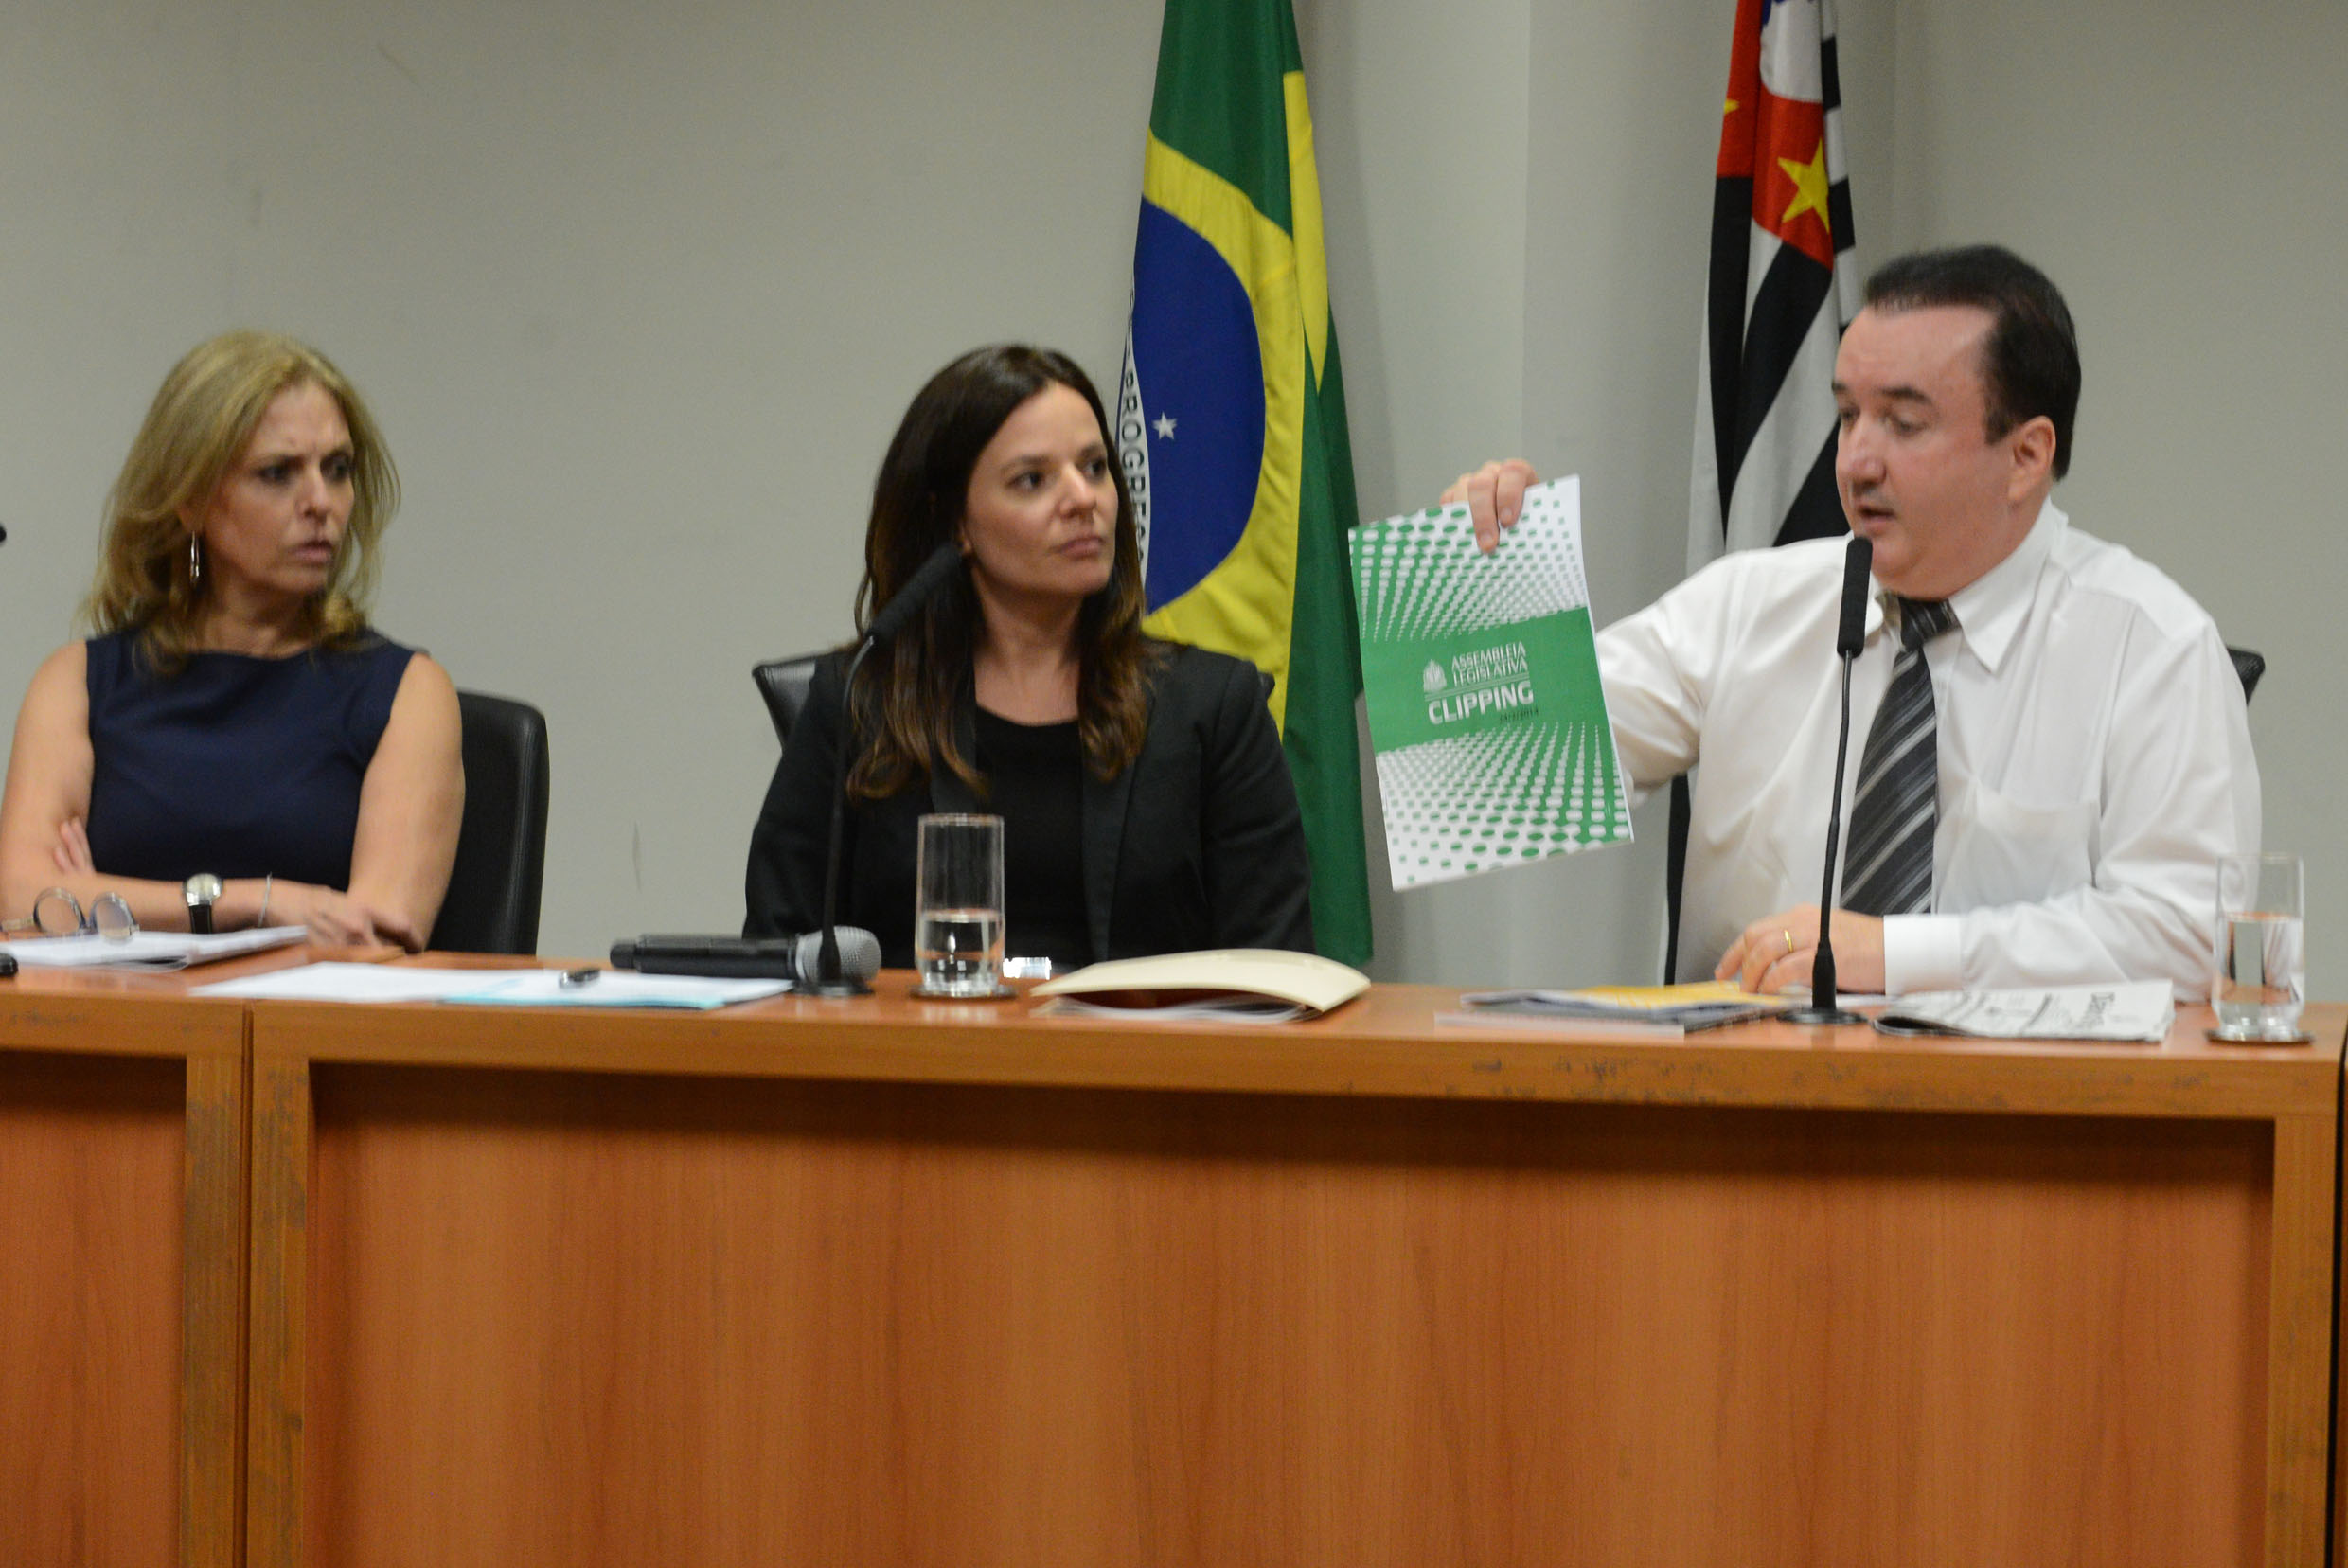 Mônica Menezes, Ana Cláudia Carletto, Sérgio Fernandes<a style='float:right' href='https://www3.al.sp.gov.br/repositorio/noticia/N-02-2014/fg158905.jpg' target=_blank><img src='/_img/material-file-download-white.png' width='14px' alt='Clique para baixar a imagem'></a>